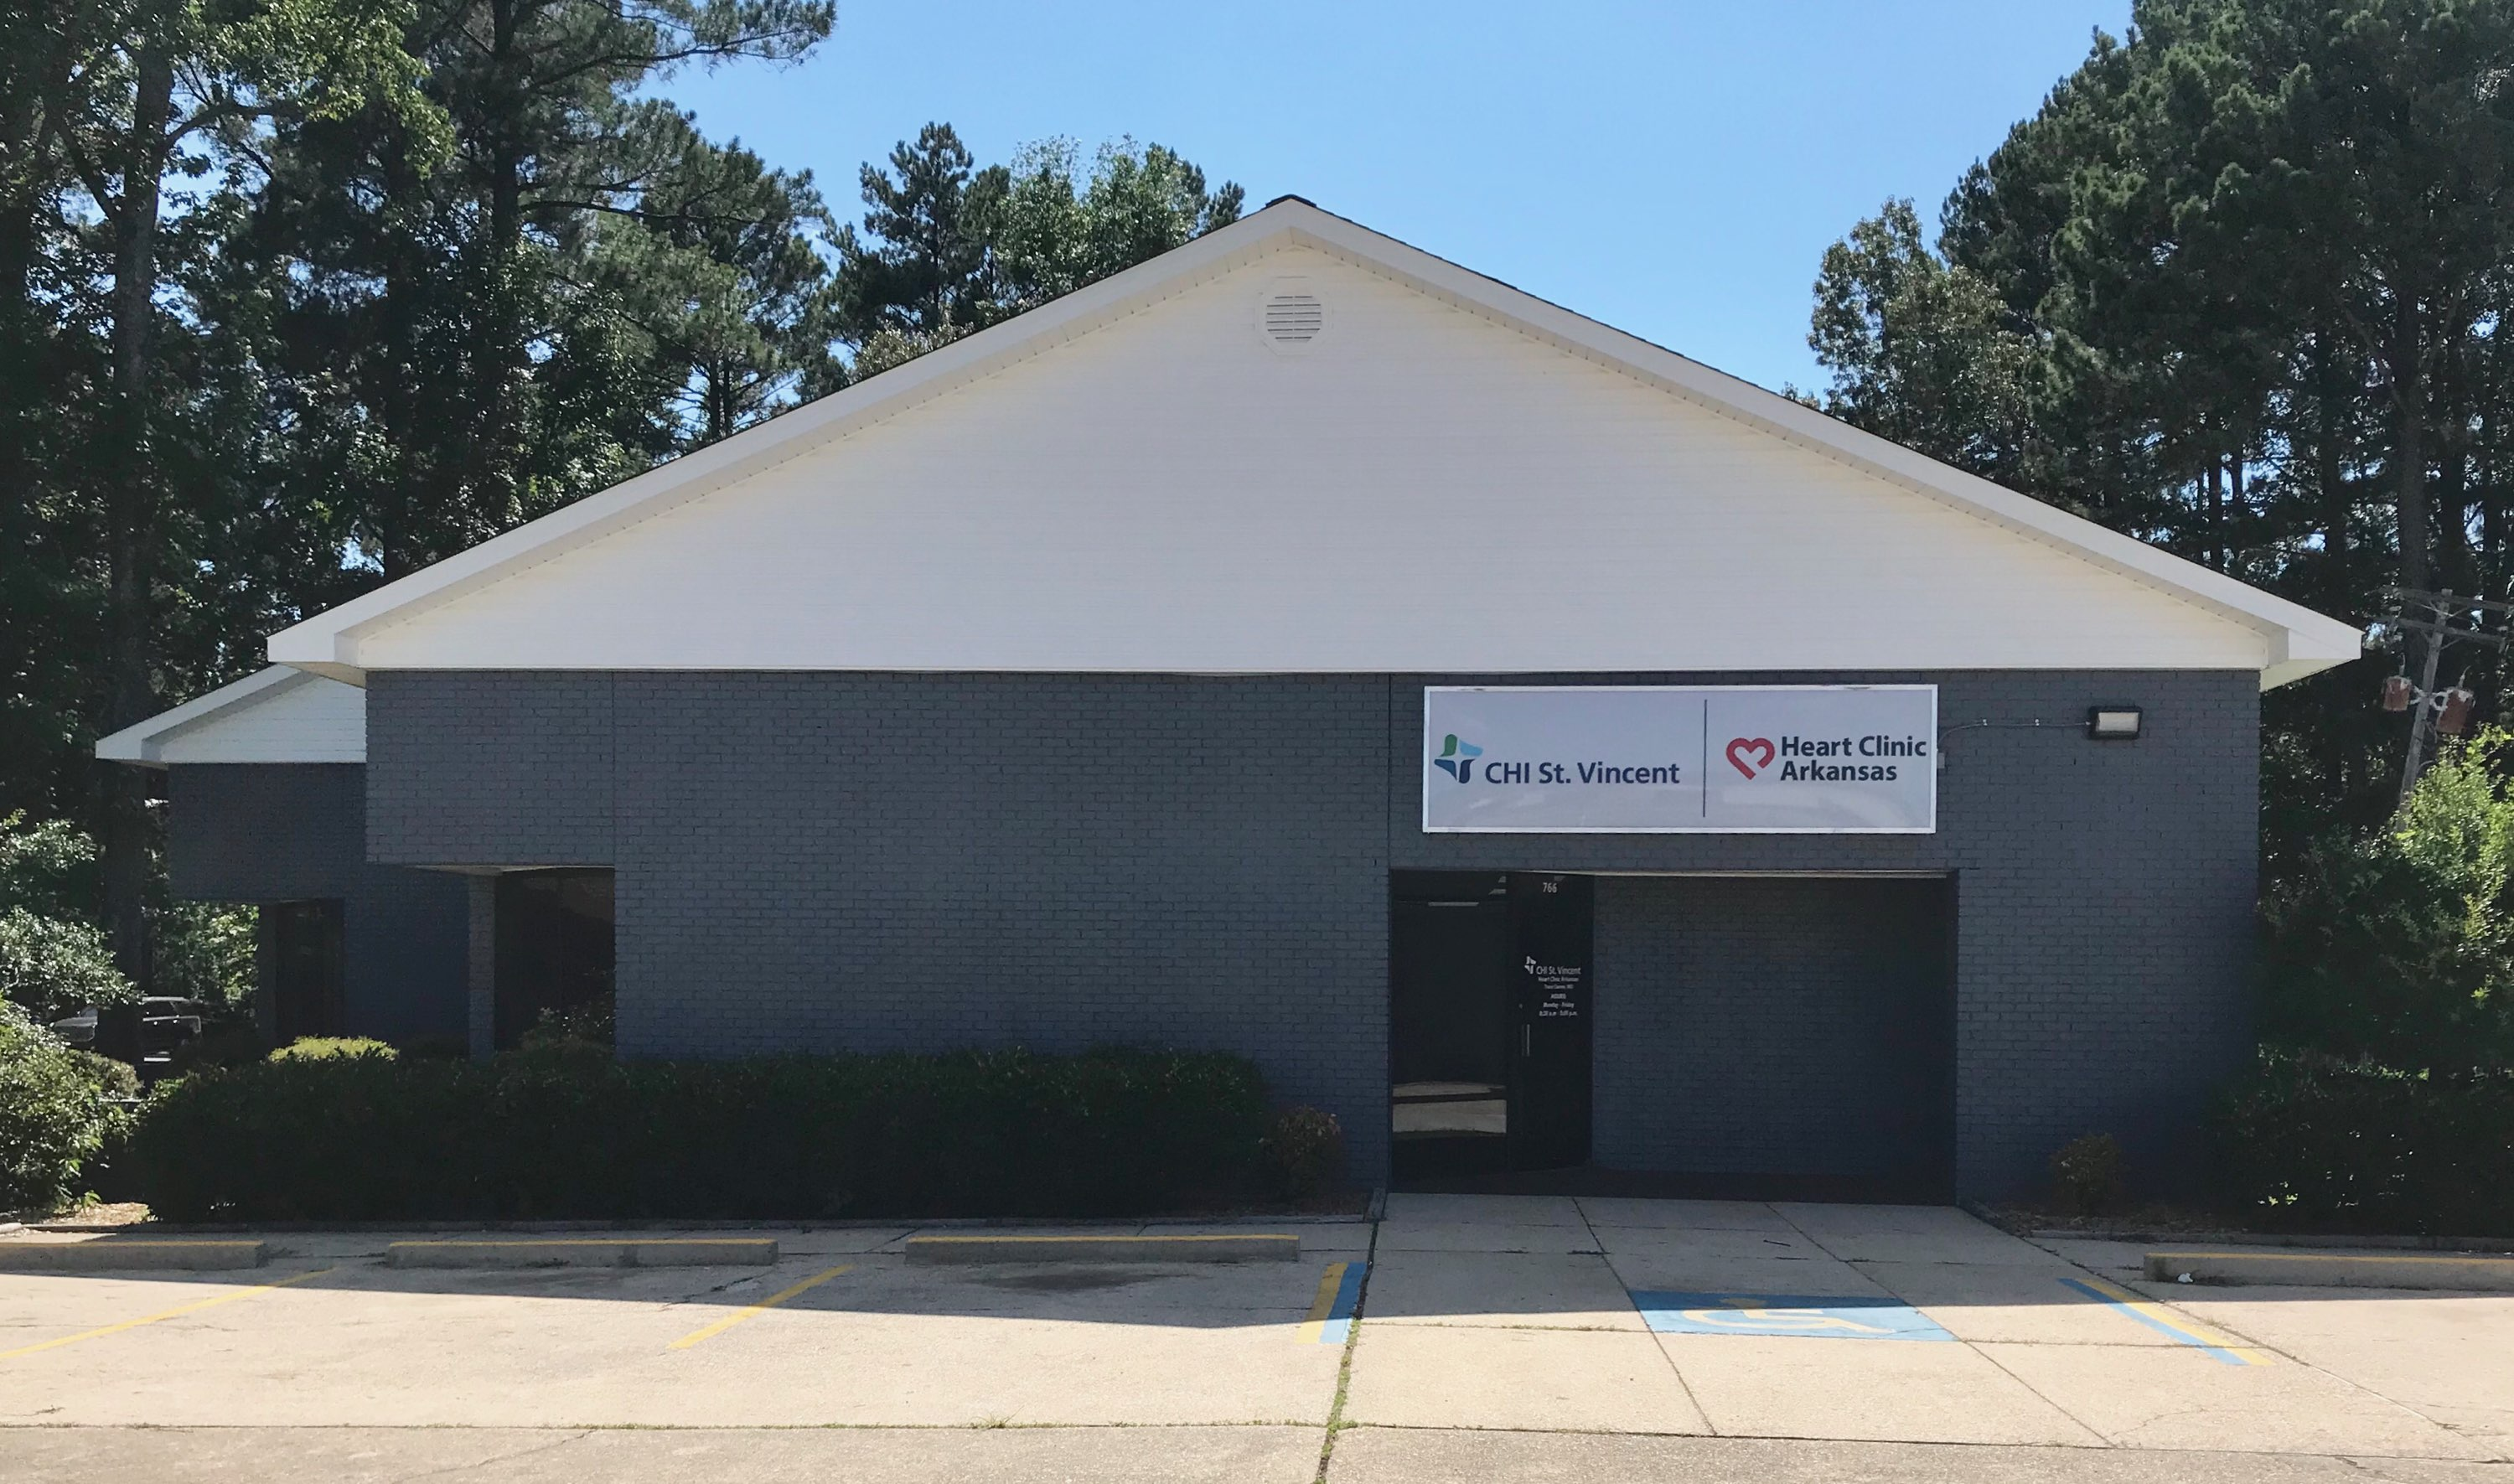 CHI St. Vincent Heart Clinic Arkansas - Monticello